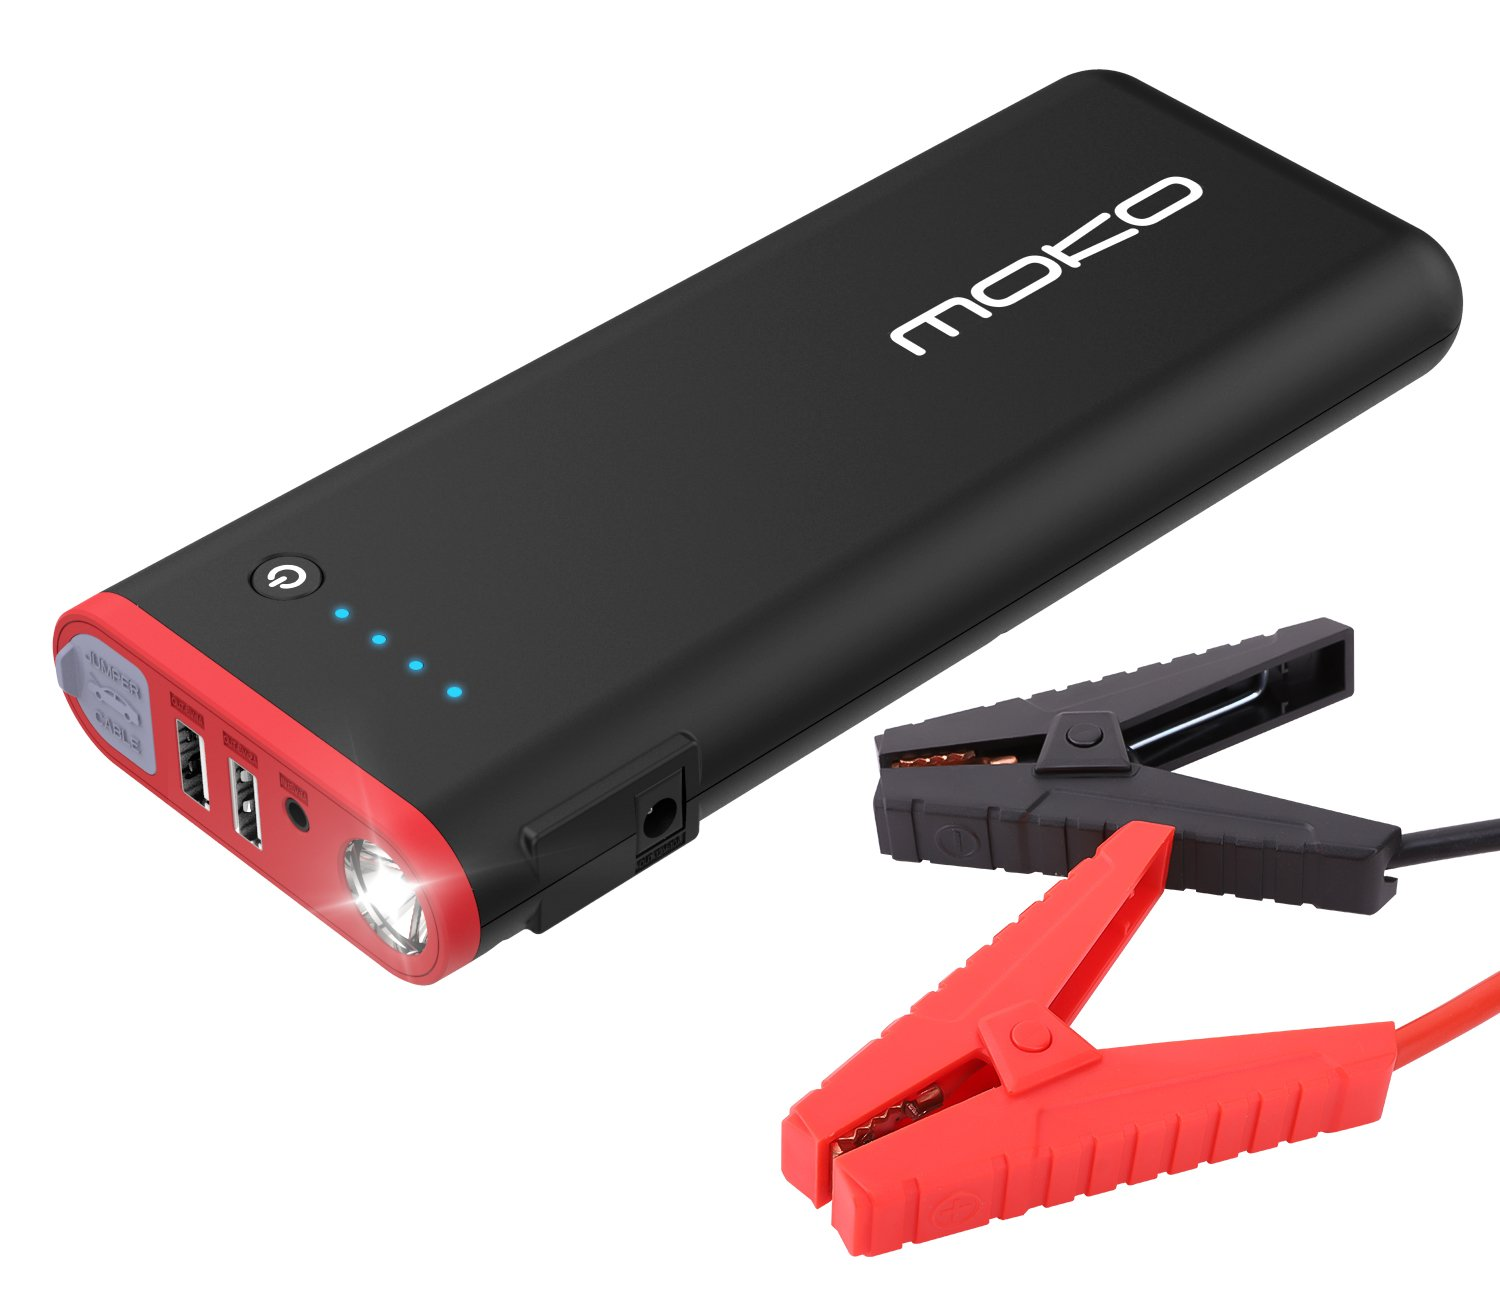 MoKo 1000A Peak Car Jump Starter, 19800mAh 12V Auto Emergency Booster (8L Gas and 5L Diesel Engine), Portable Power Bank External Battery Pack with 2 USB Ports and LED Flashlight - Black & Red